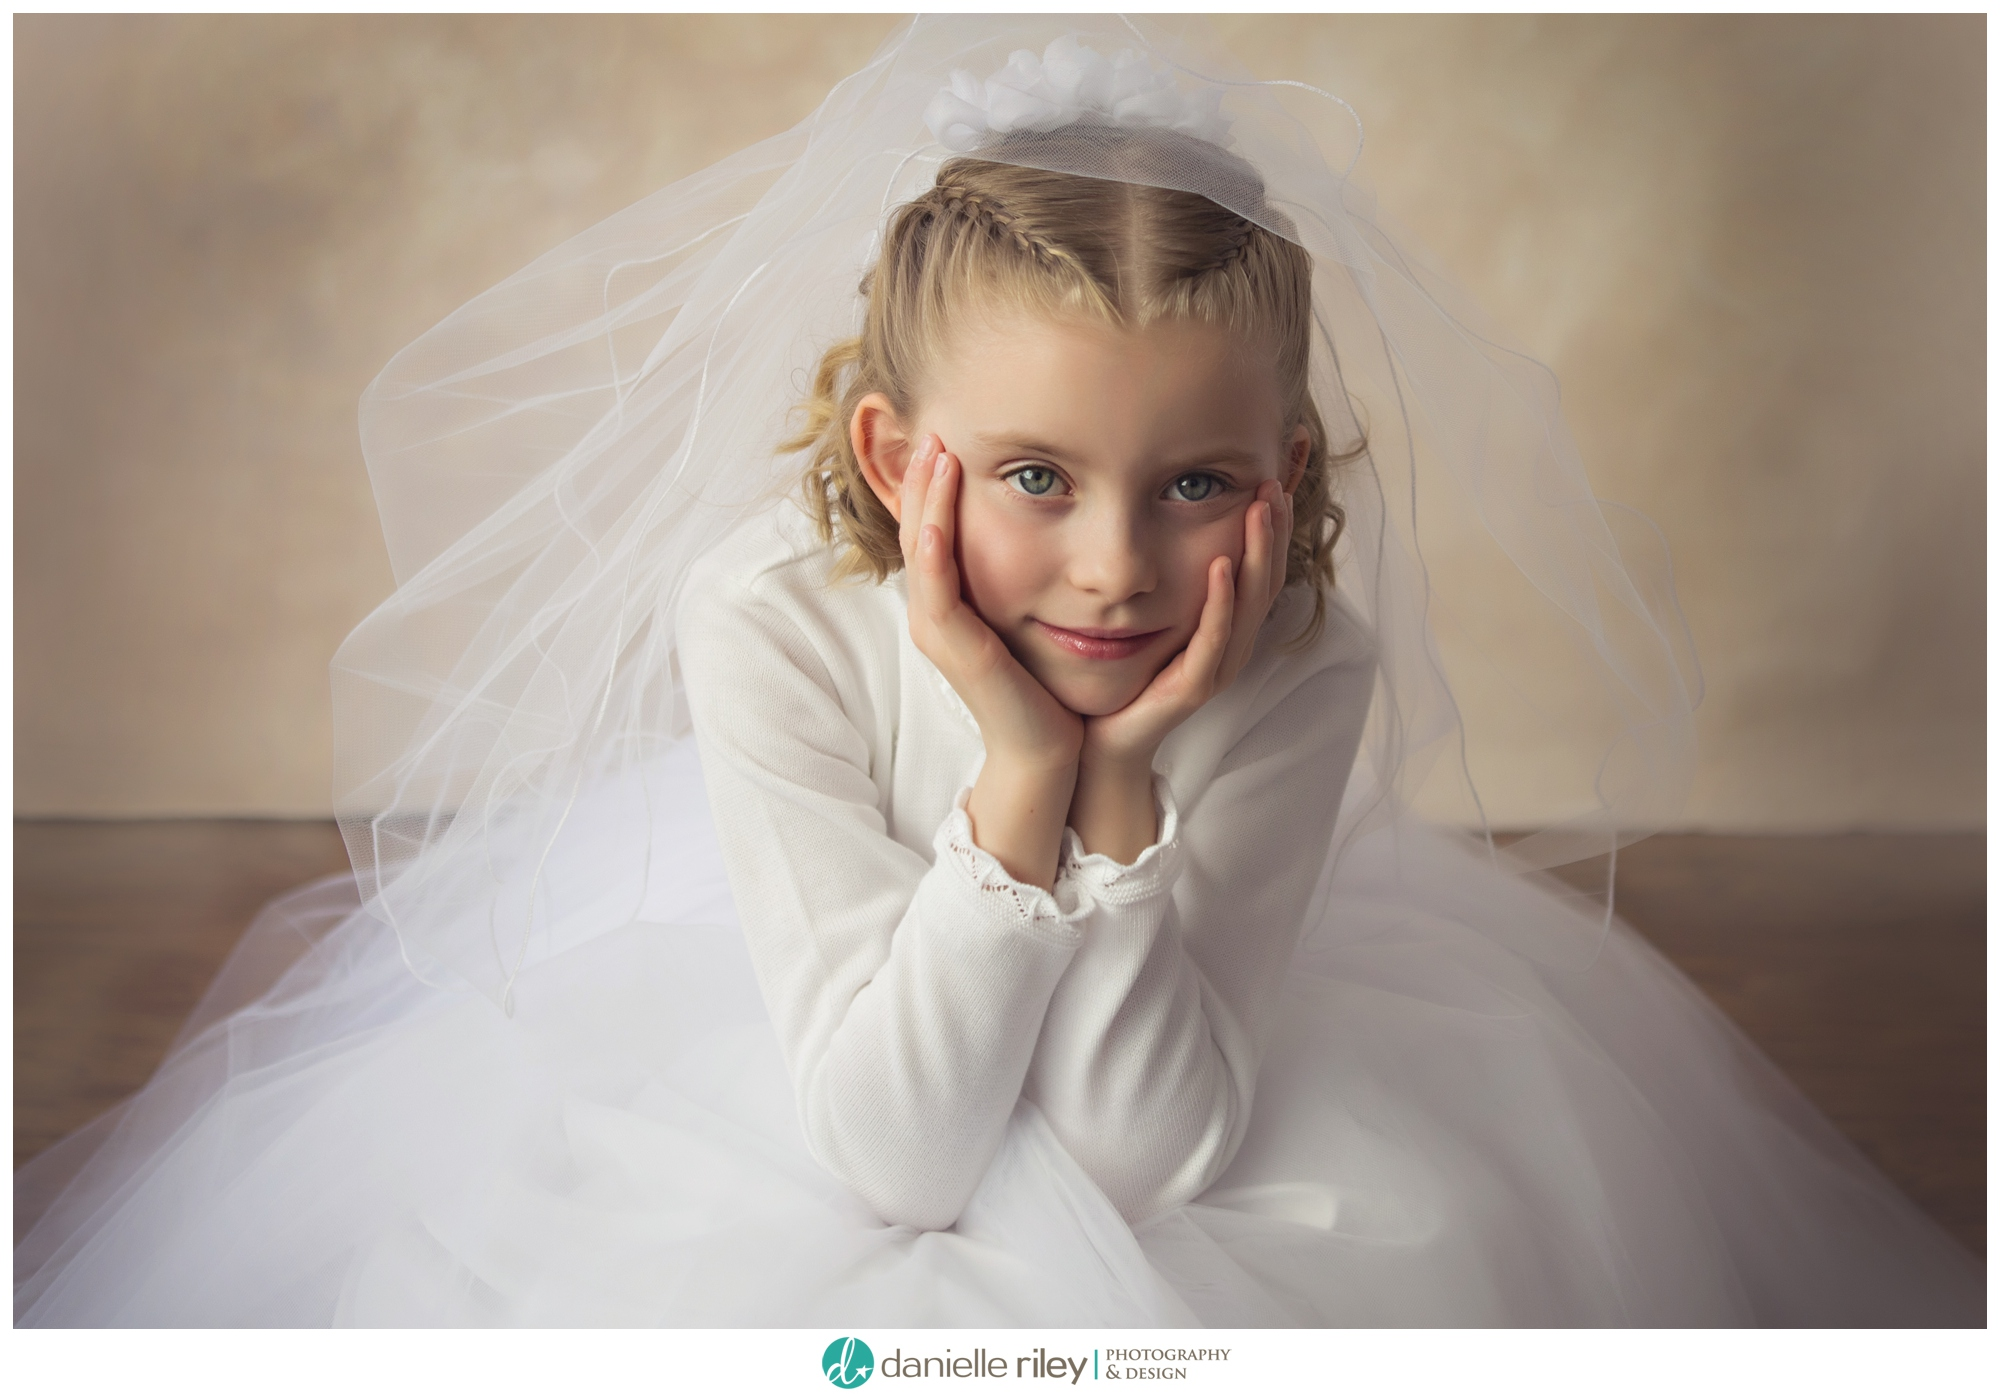 First Communion Portrait Session New Jersey